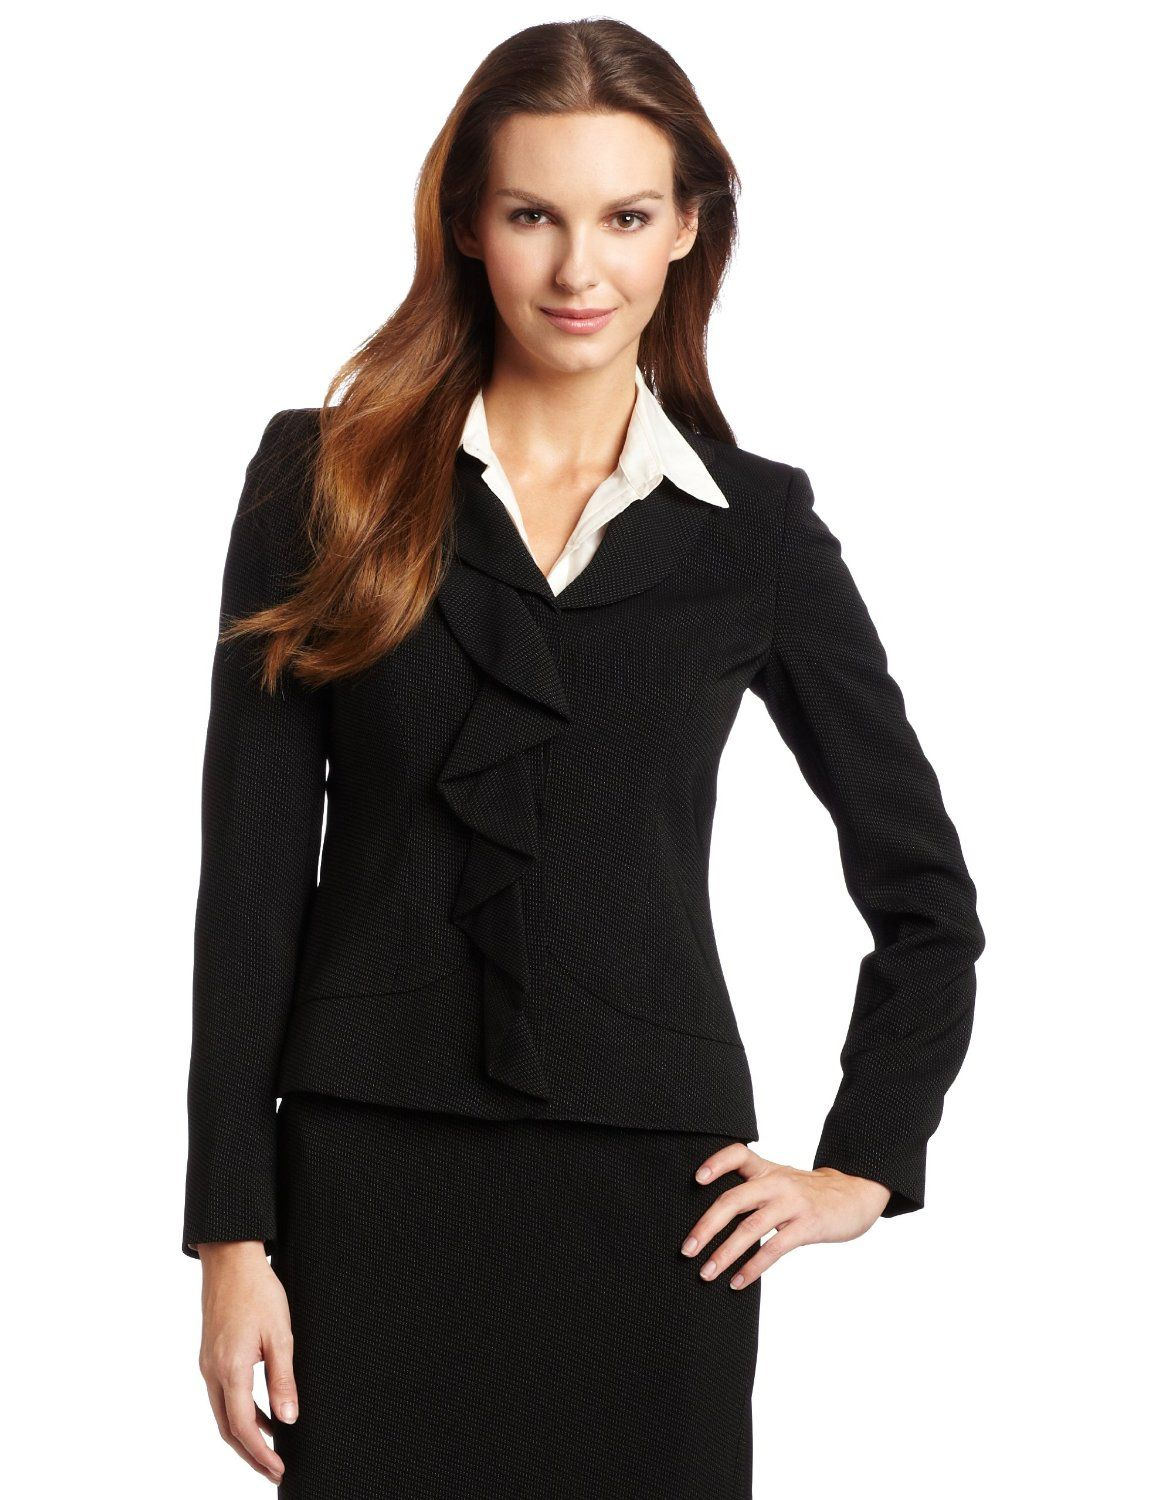 business clothes for women | Business casual dress suits for women ...